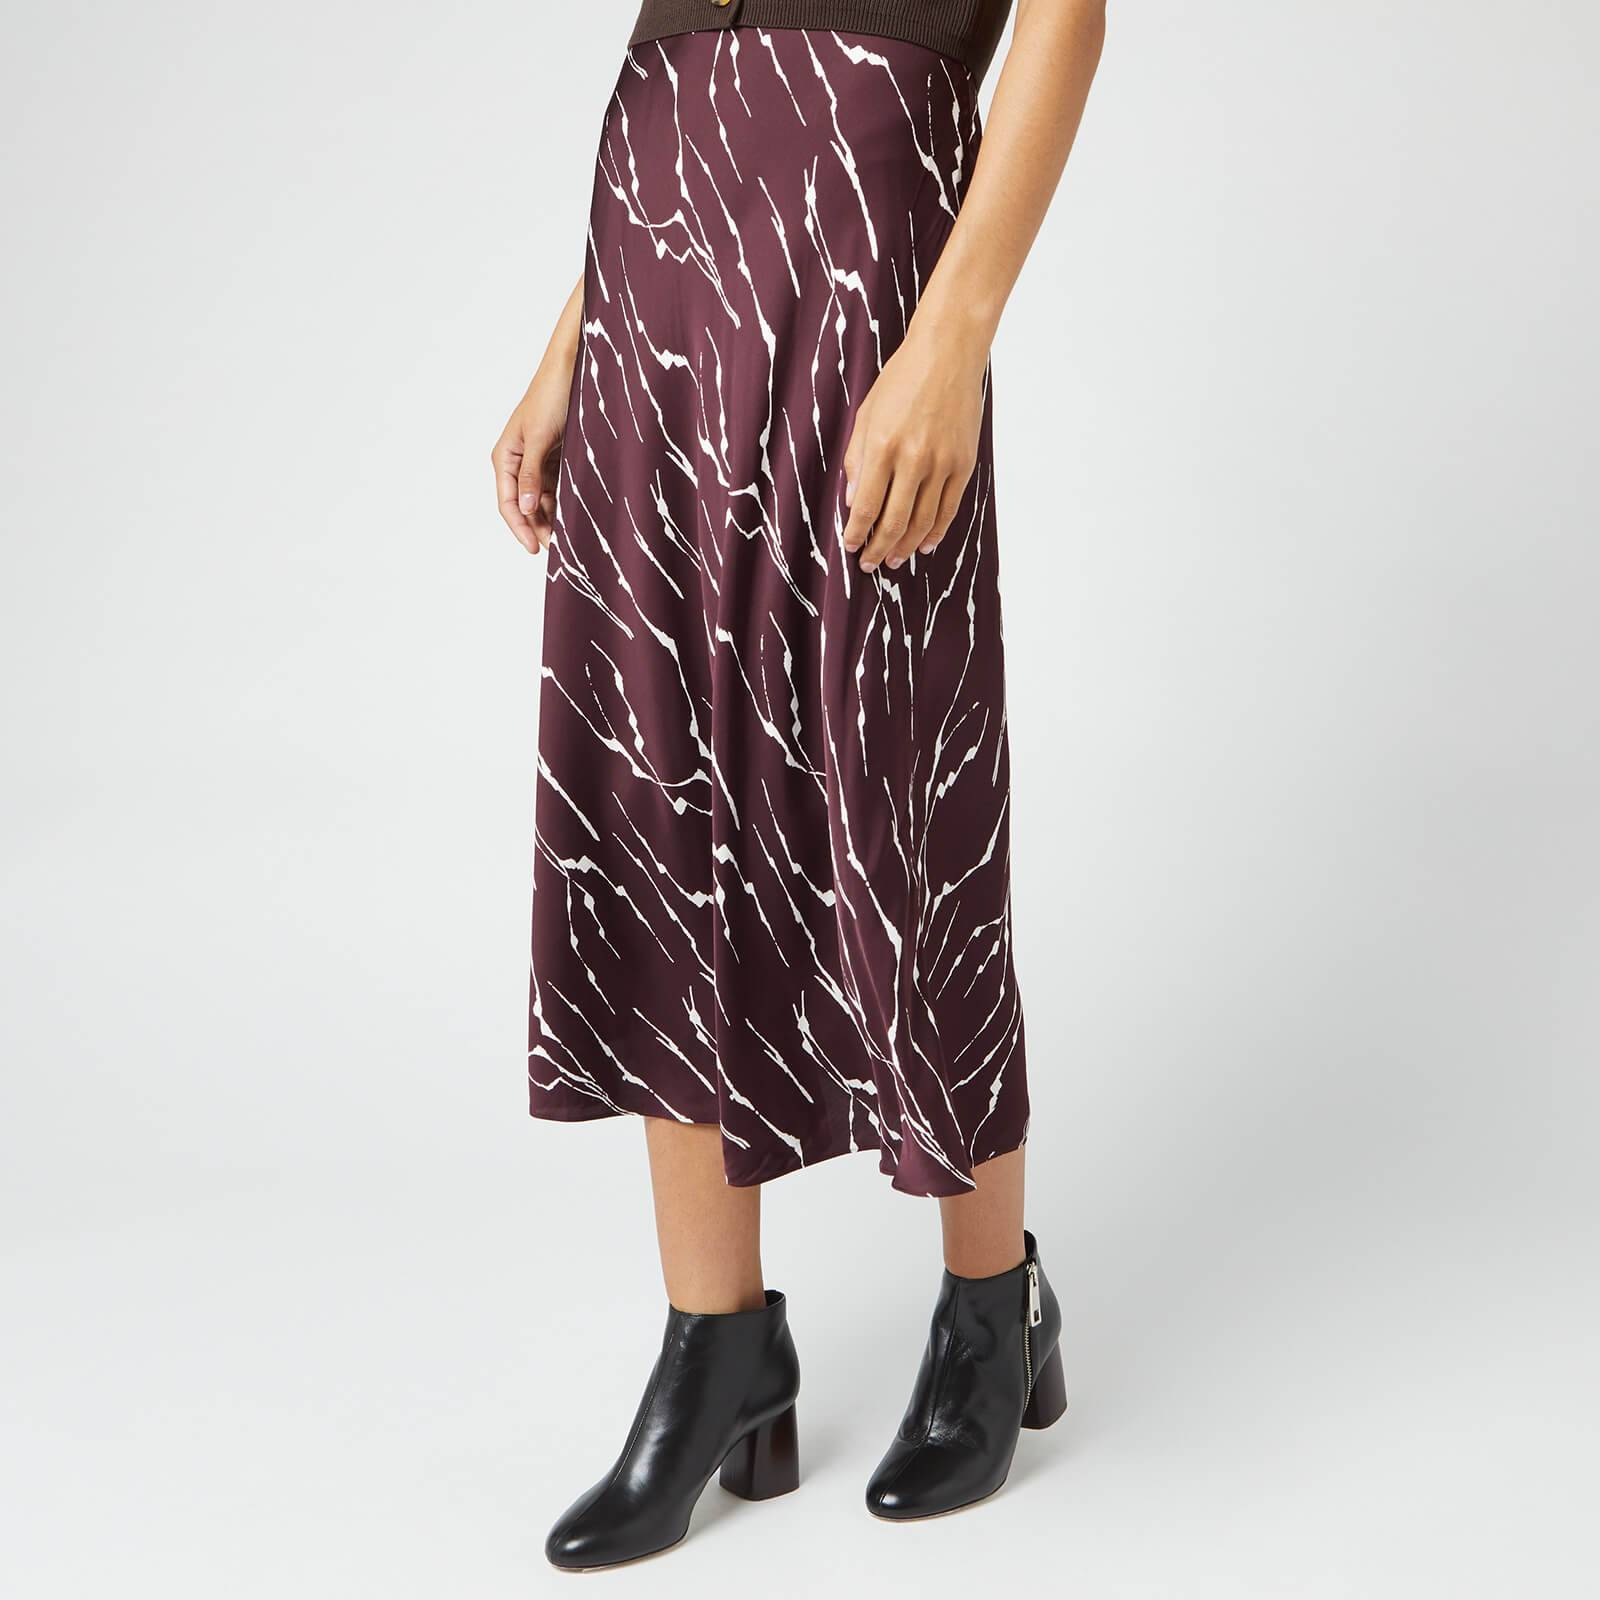 Whistles Women's Twig Silk Bias Skirt - Burgundy - UK 6